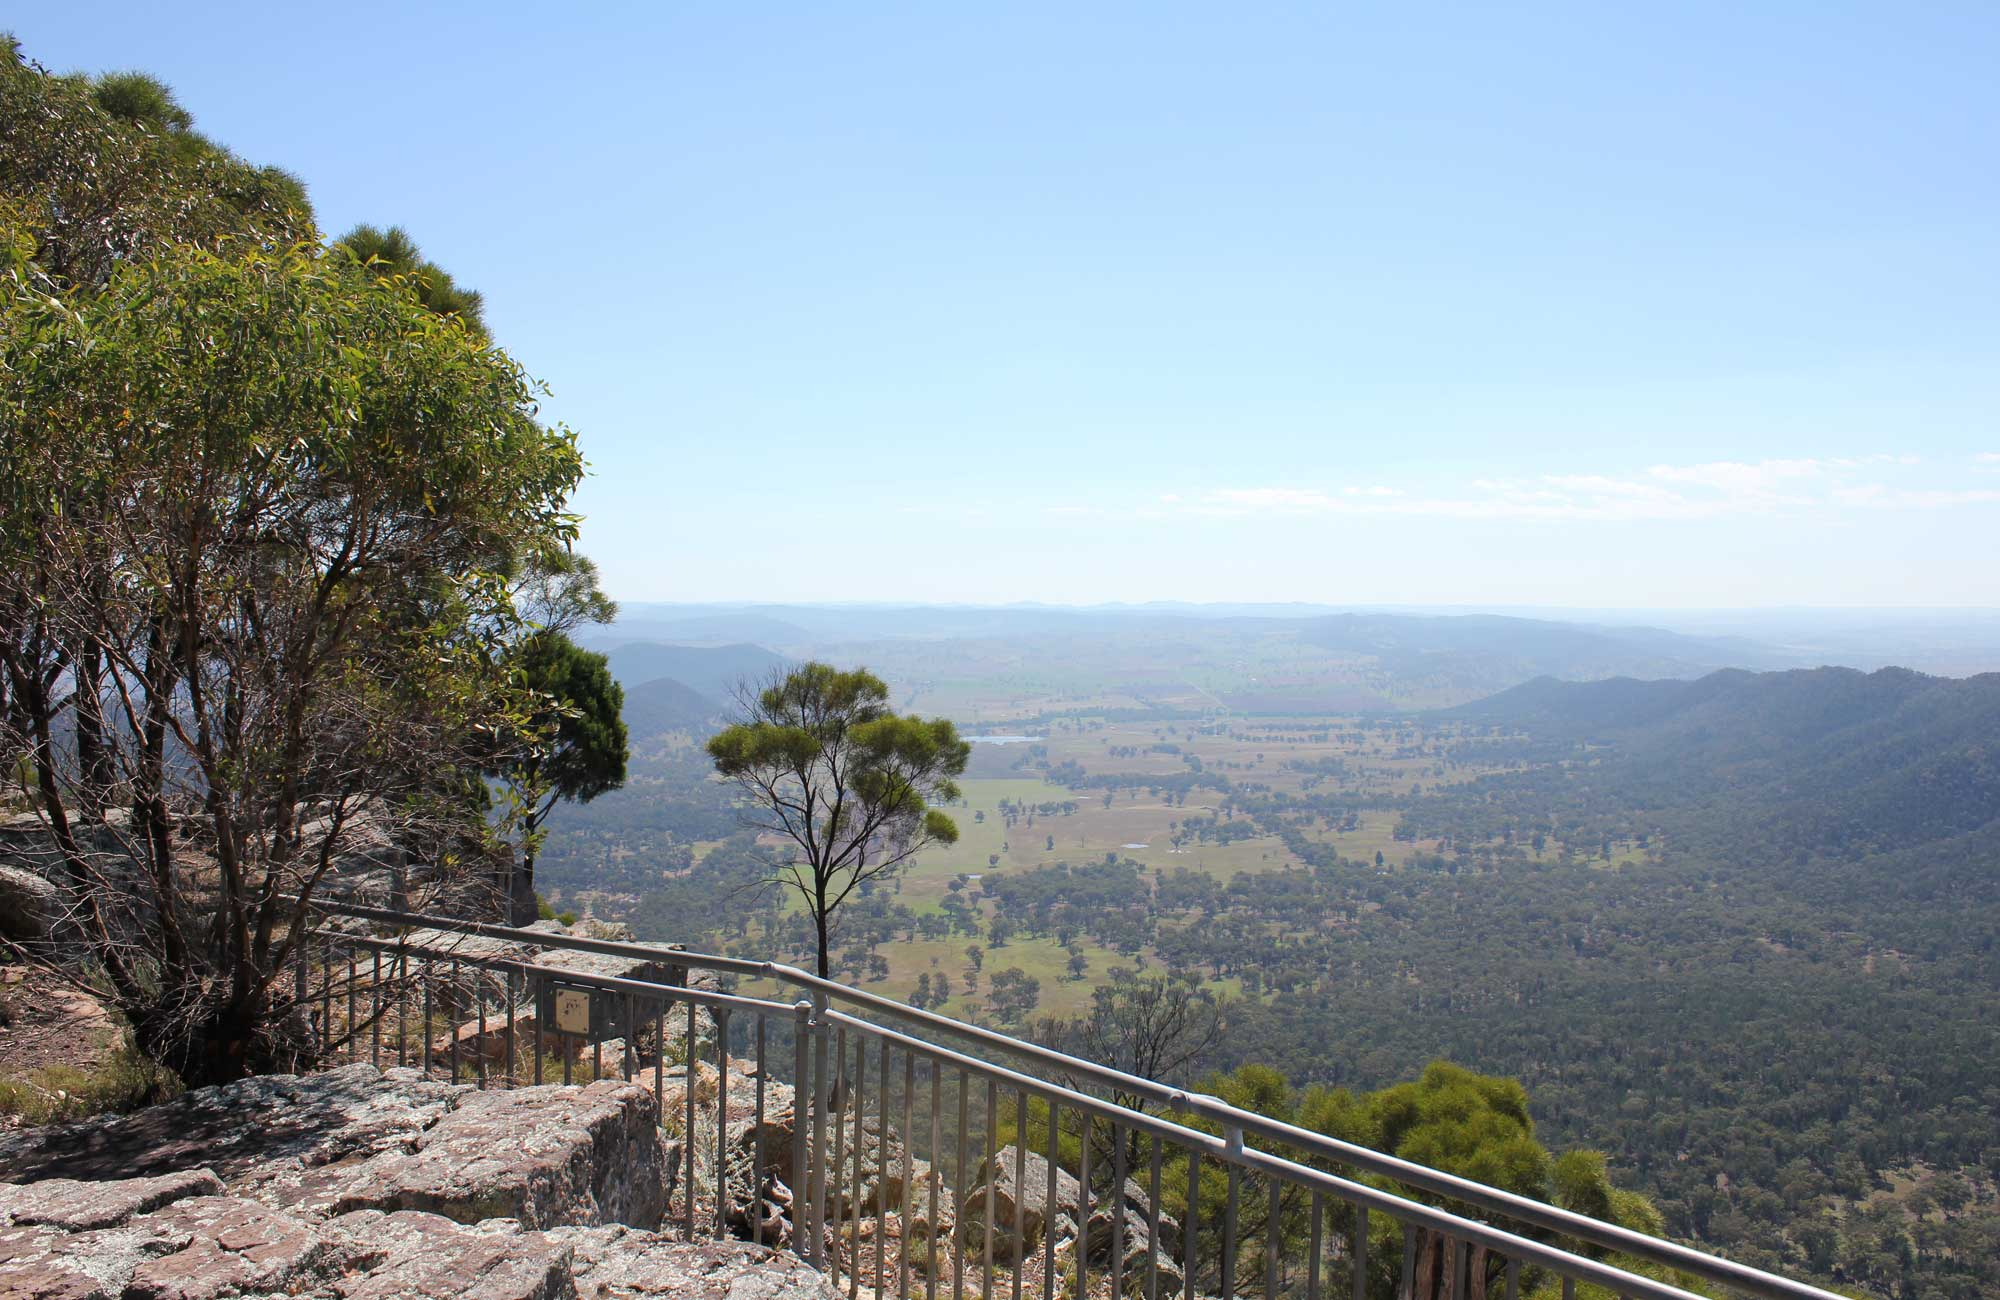 Mount Nangar lookout, Nangar National Park. Photo: K Edwards/NSW Government